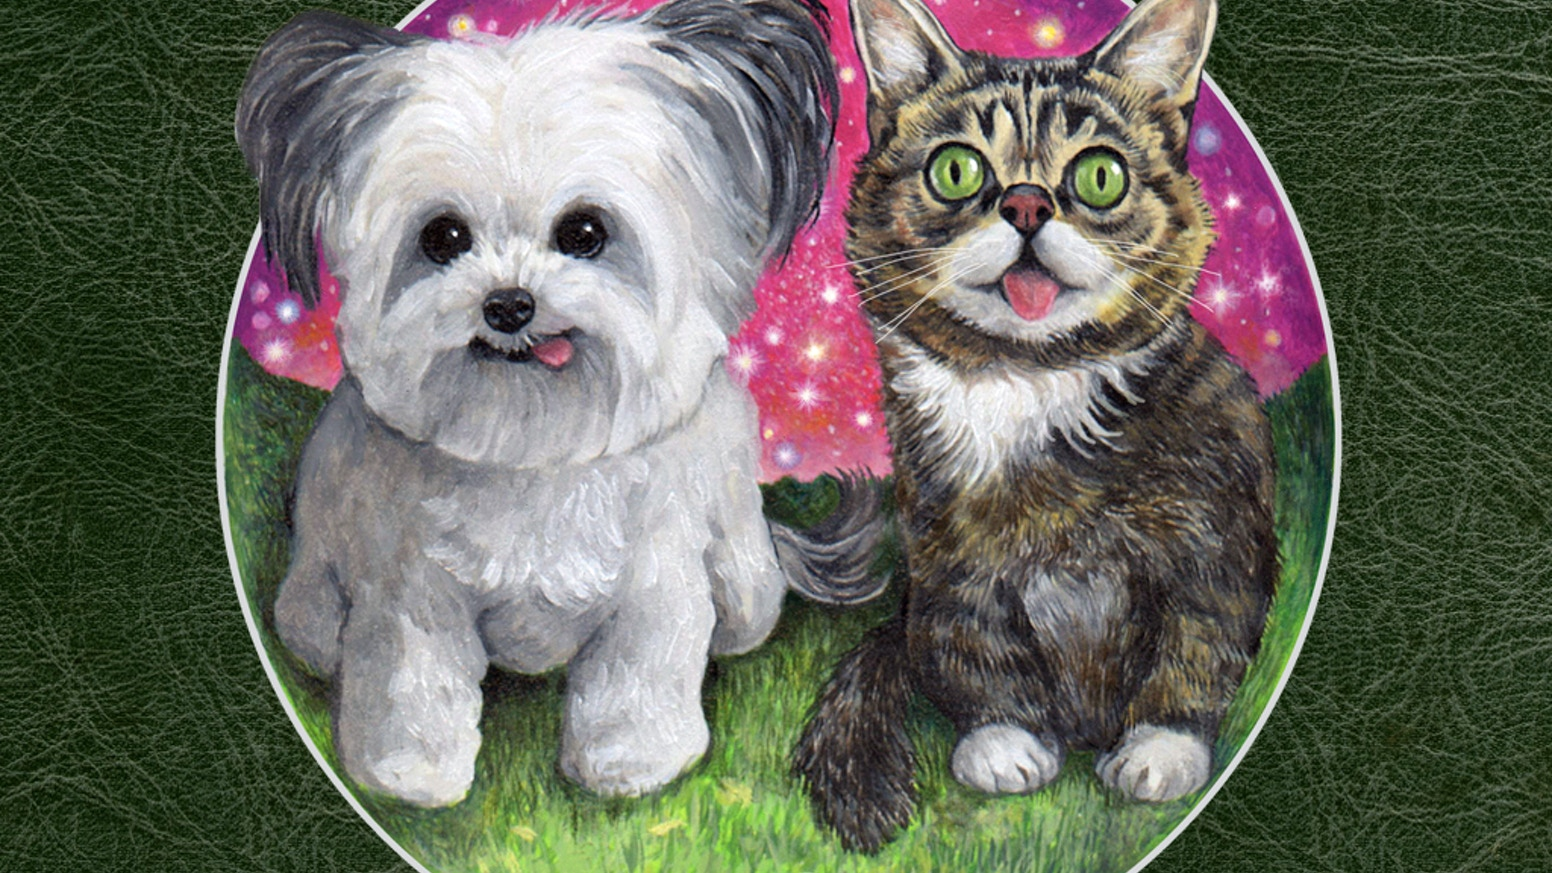 An exquisite, magical picture book starring Norbert and Lil BUB...with a grand purpose and a surprise ending!